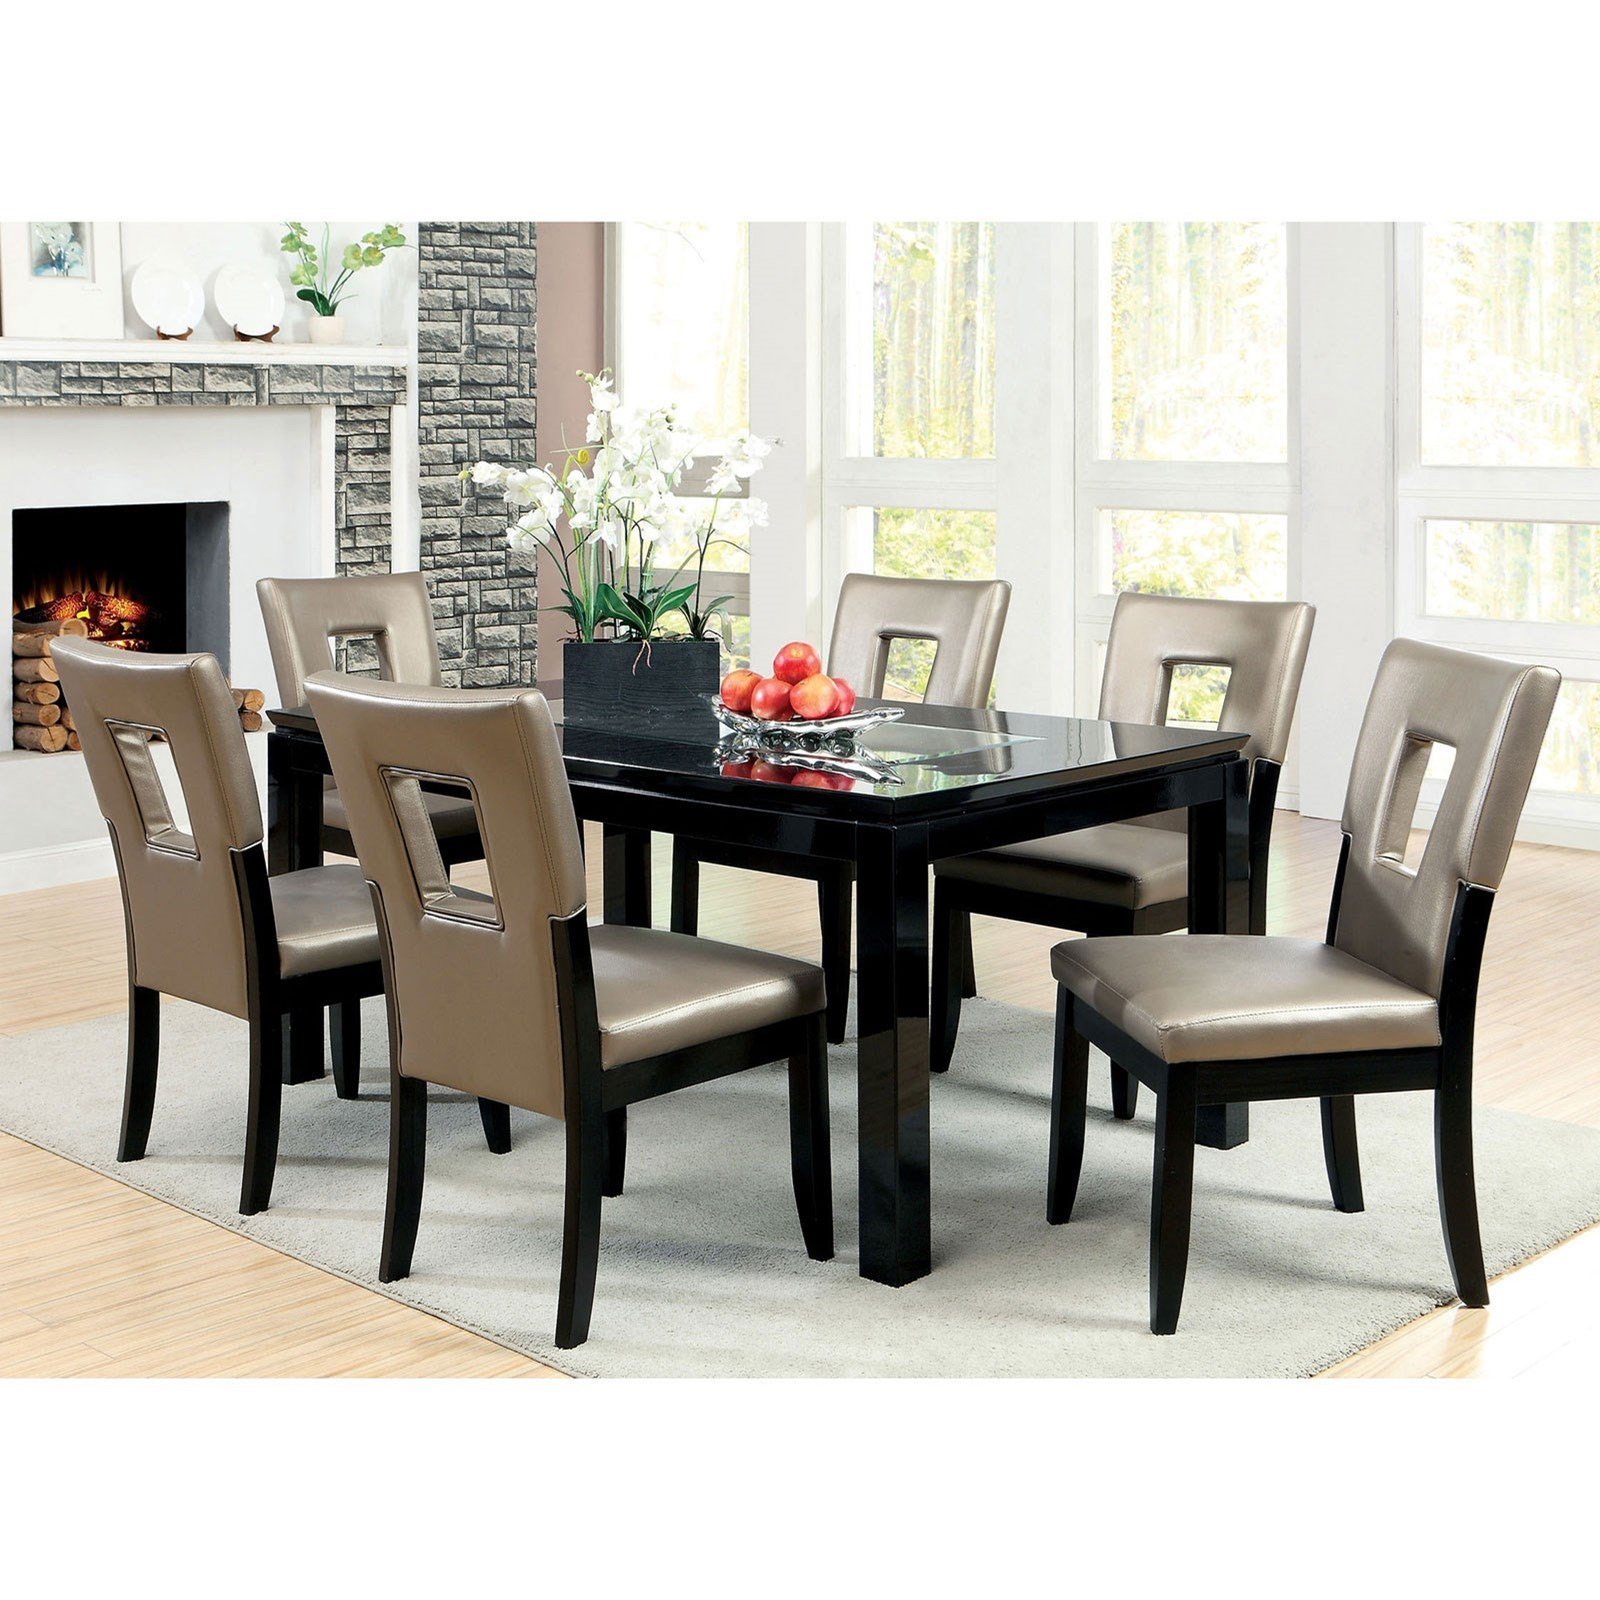 best sneakers 28fc1 aaf3f Evant I Contemporary Dining Table Set with Six Chairs by Furniture of  America at Rooms for Less